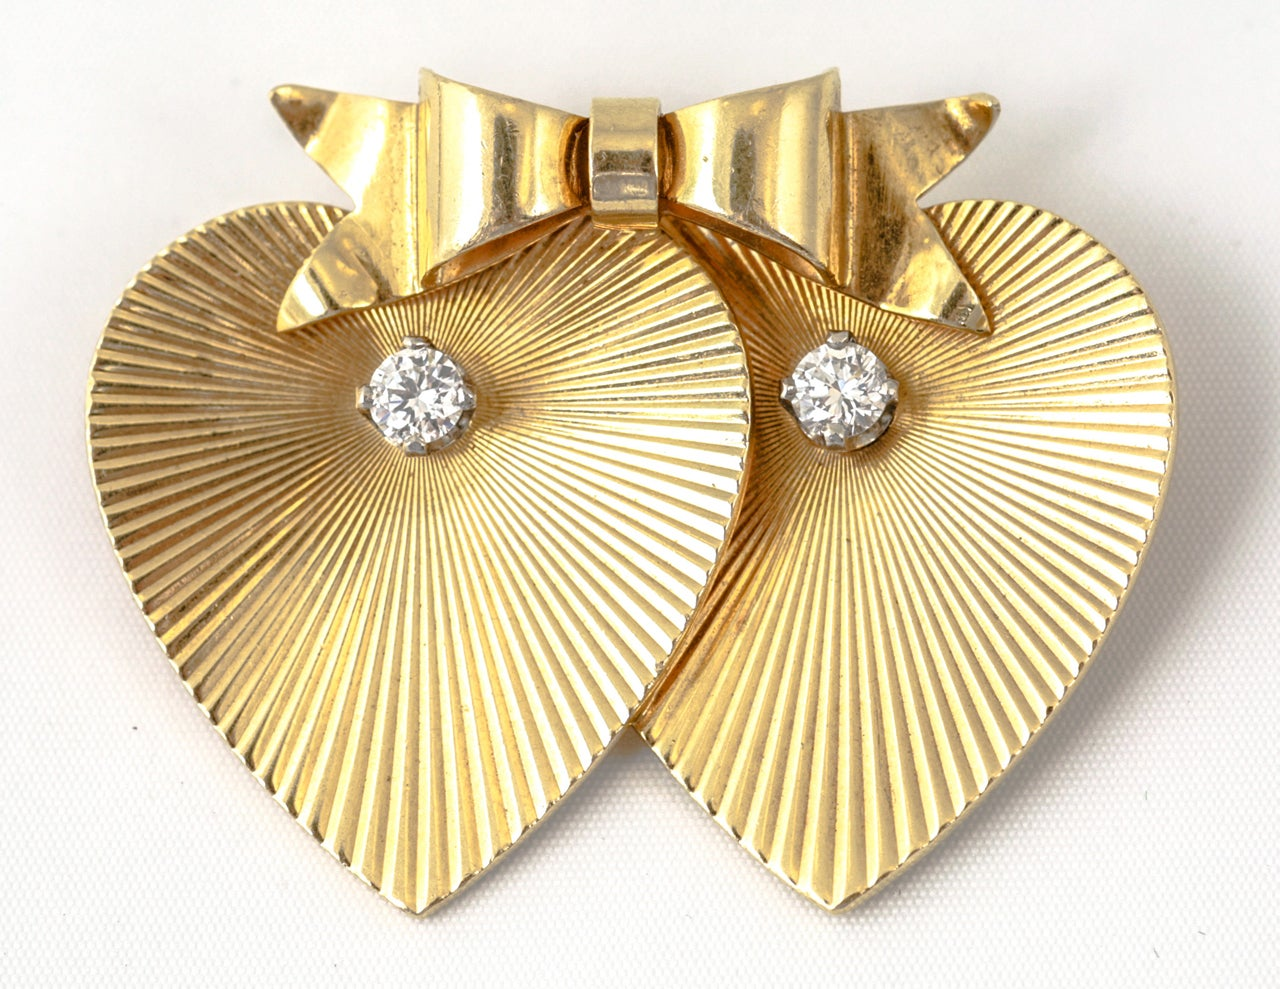 18ct gold Tiffany and Co,double heart brooch with diamonds  C. 1960